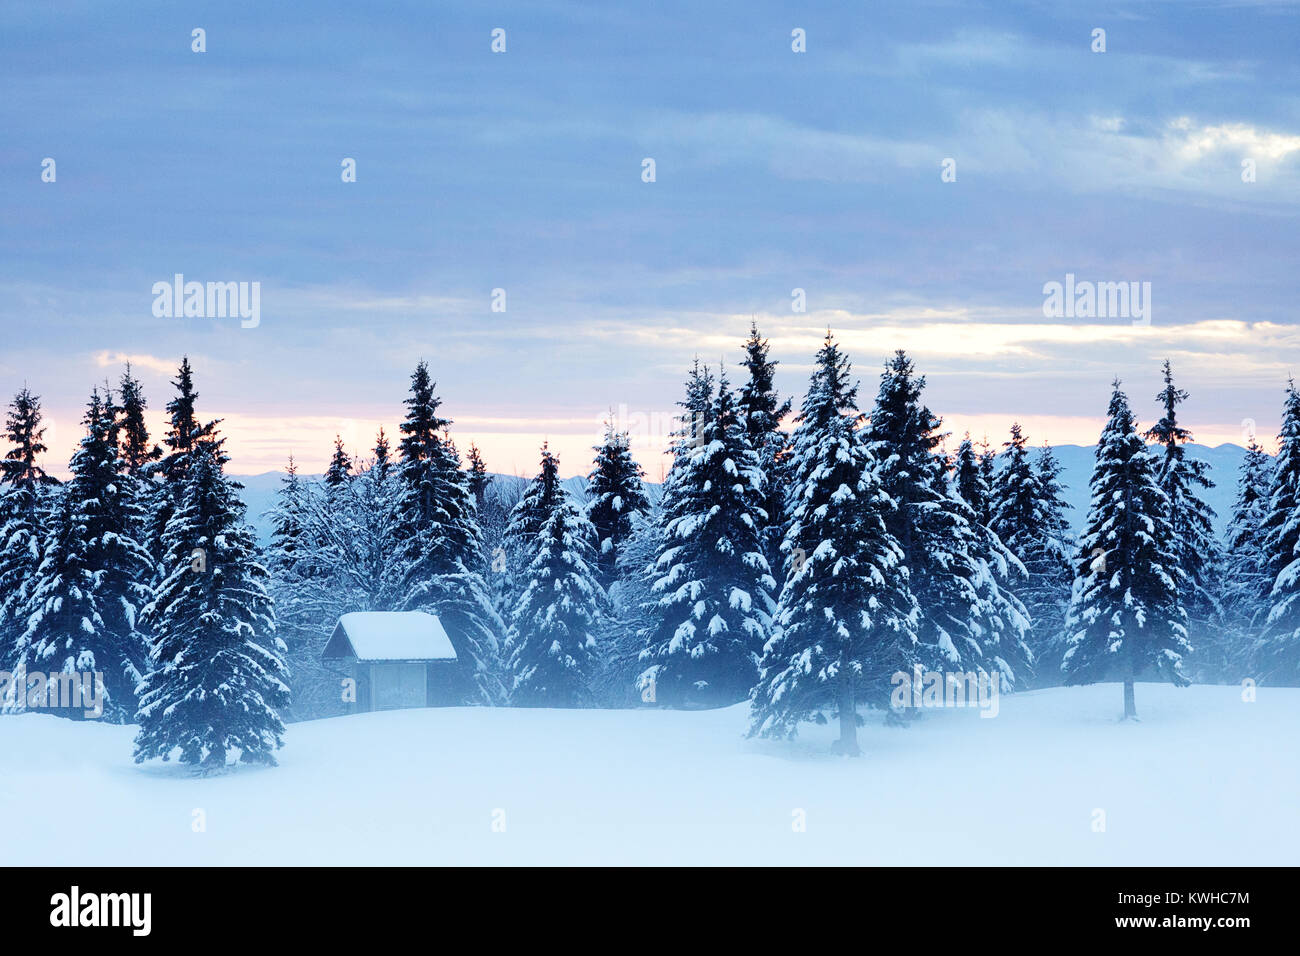 Little building covered with snow on a foggy, misty evening in a forest of frozen spruces, Krvavec, Slovenia. - Stock Image